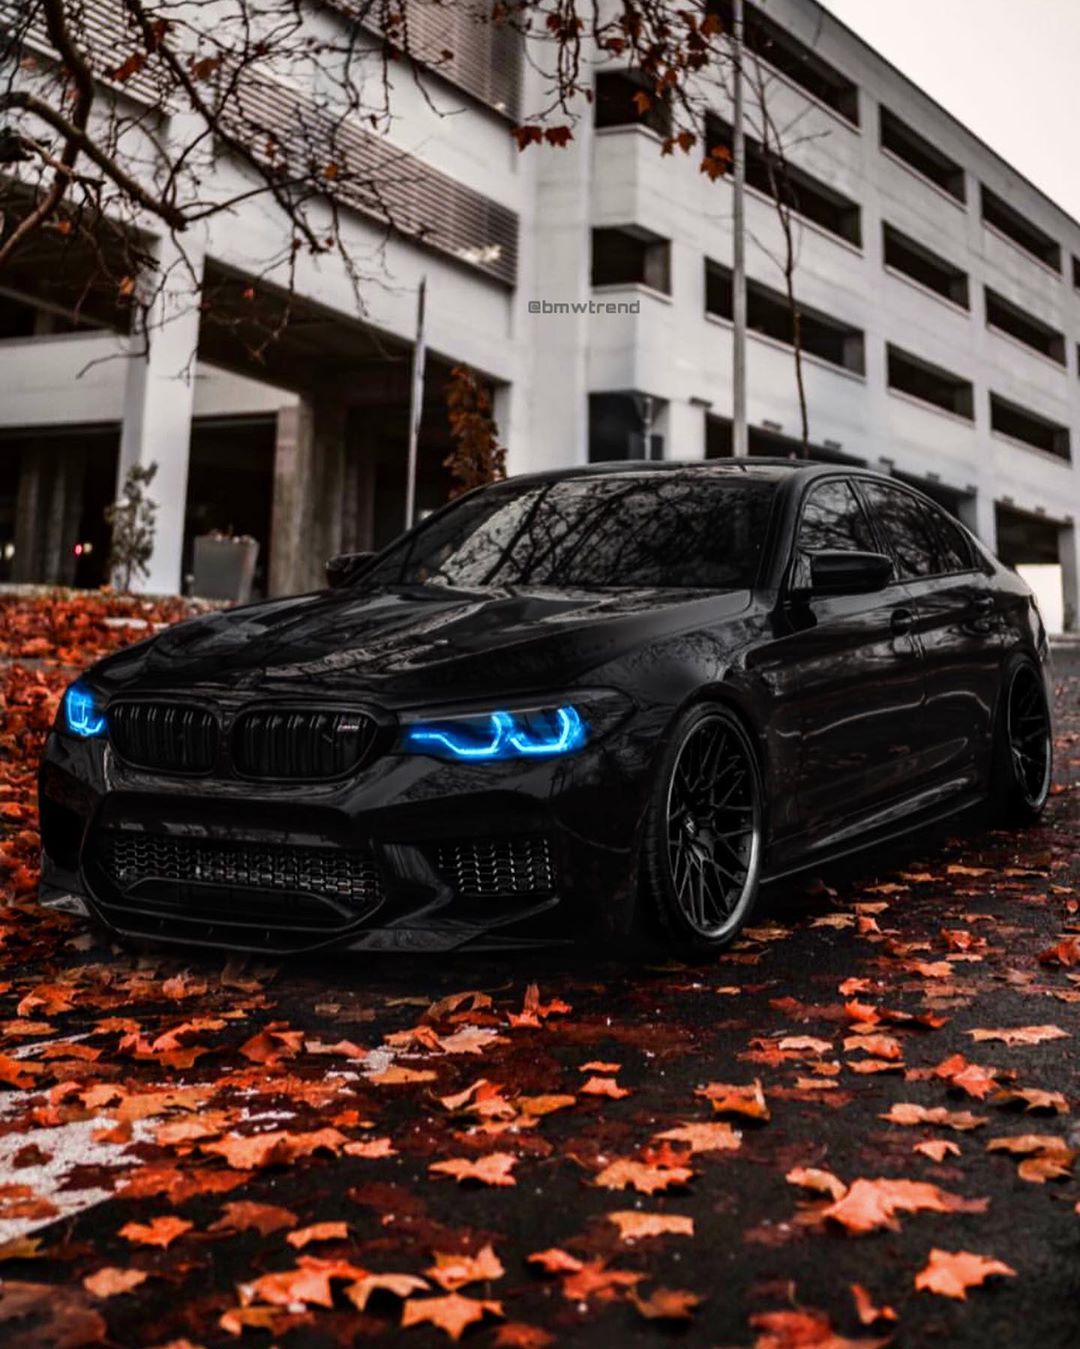 Click On The Picture For More Bmw M5 F90 Follow Bmwtrend Bmwtrend Bmwtrend Bmwtrend Beamer Bimmer Bmw Bmwm5 M5 Bmwm3 Bmw M5 Bmw Bmw M3